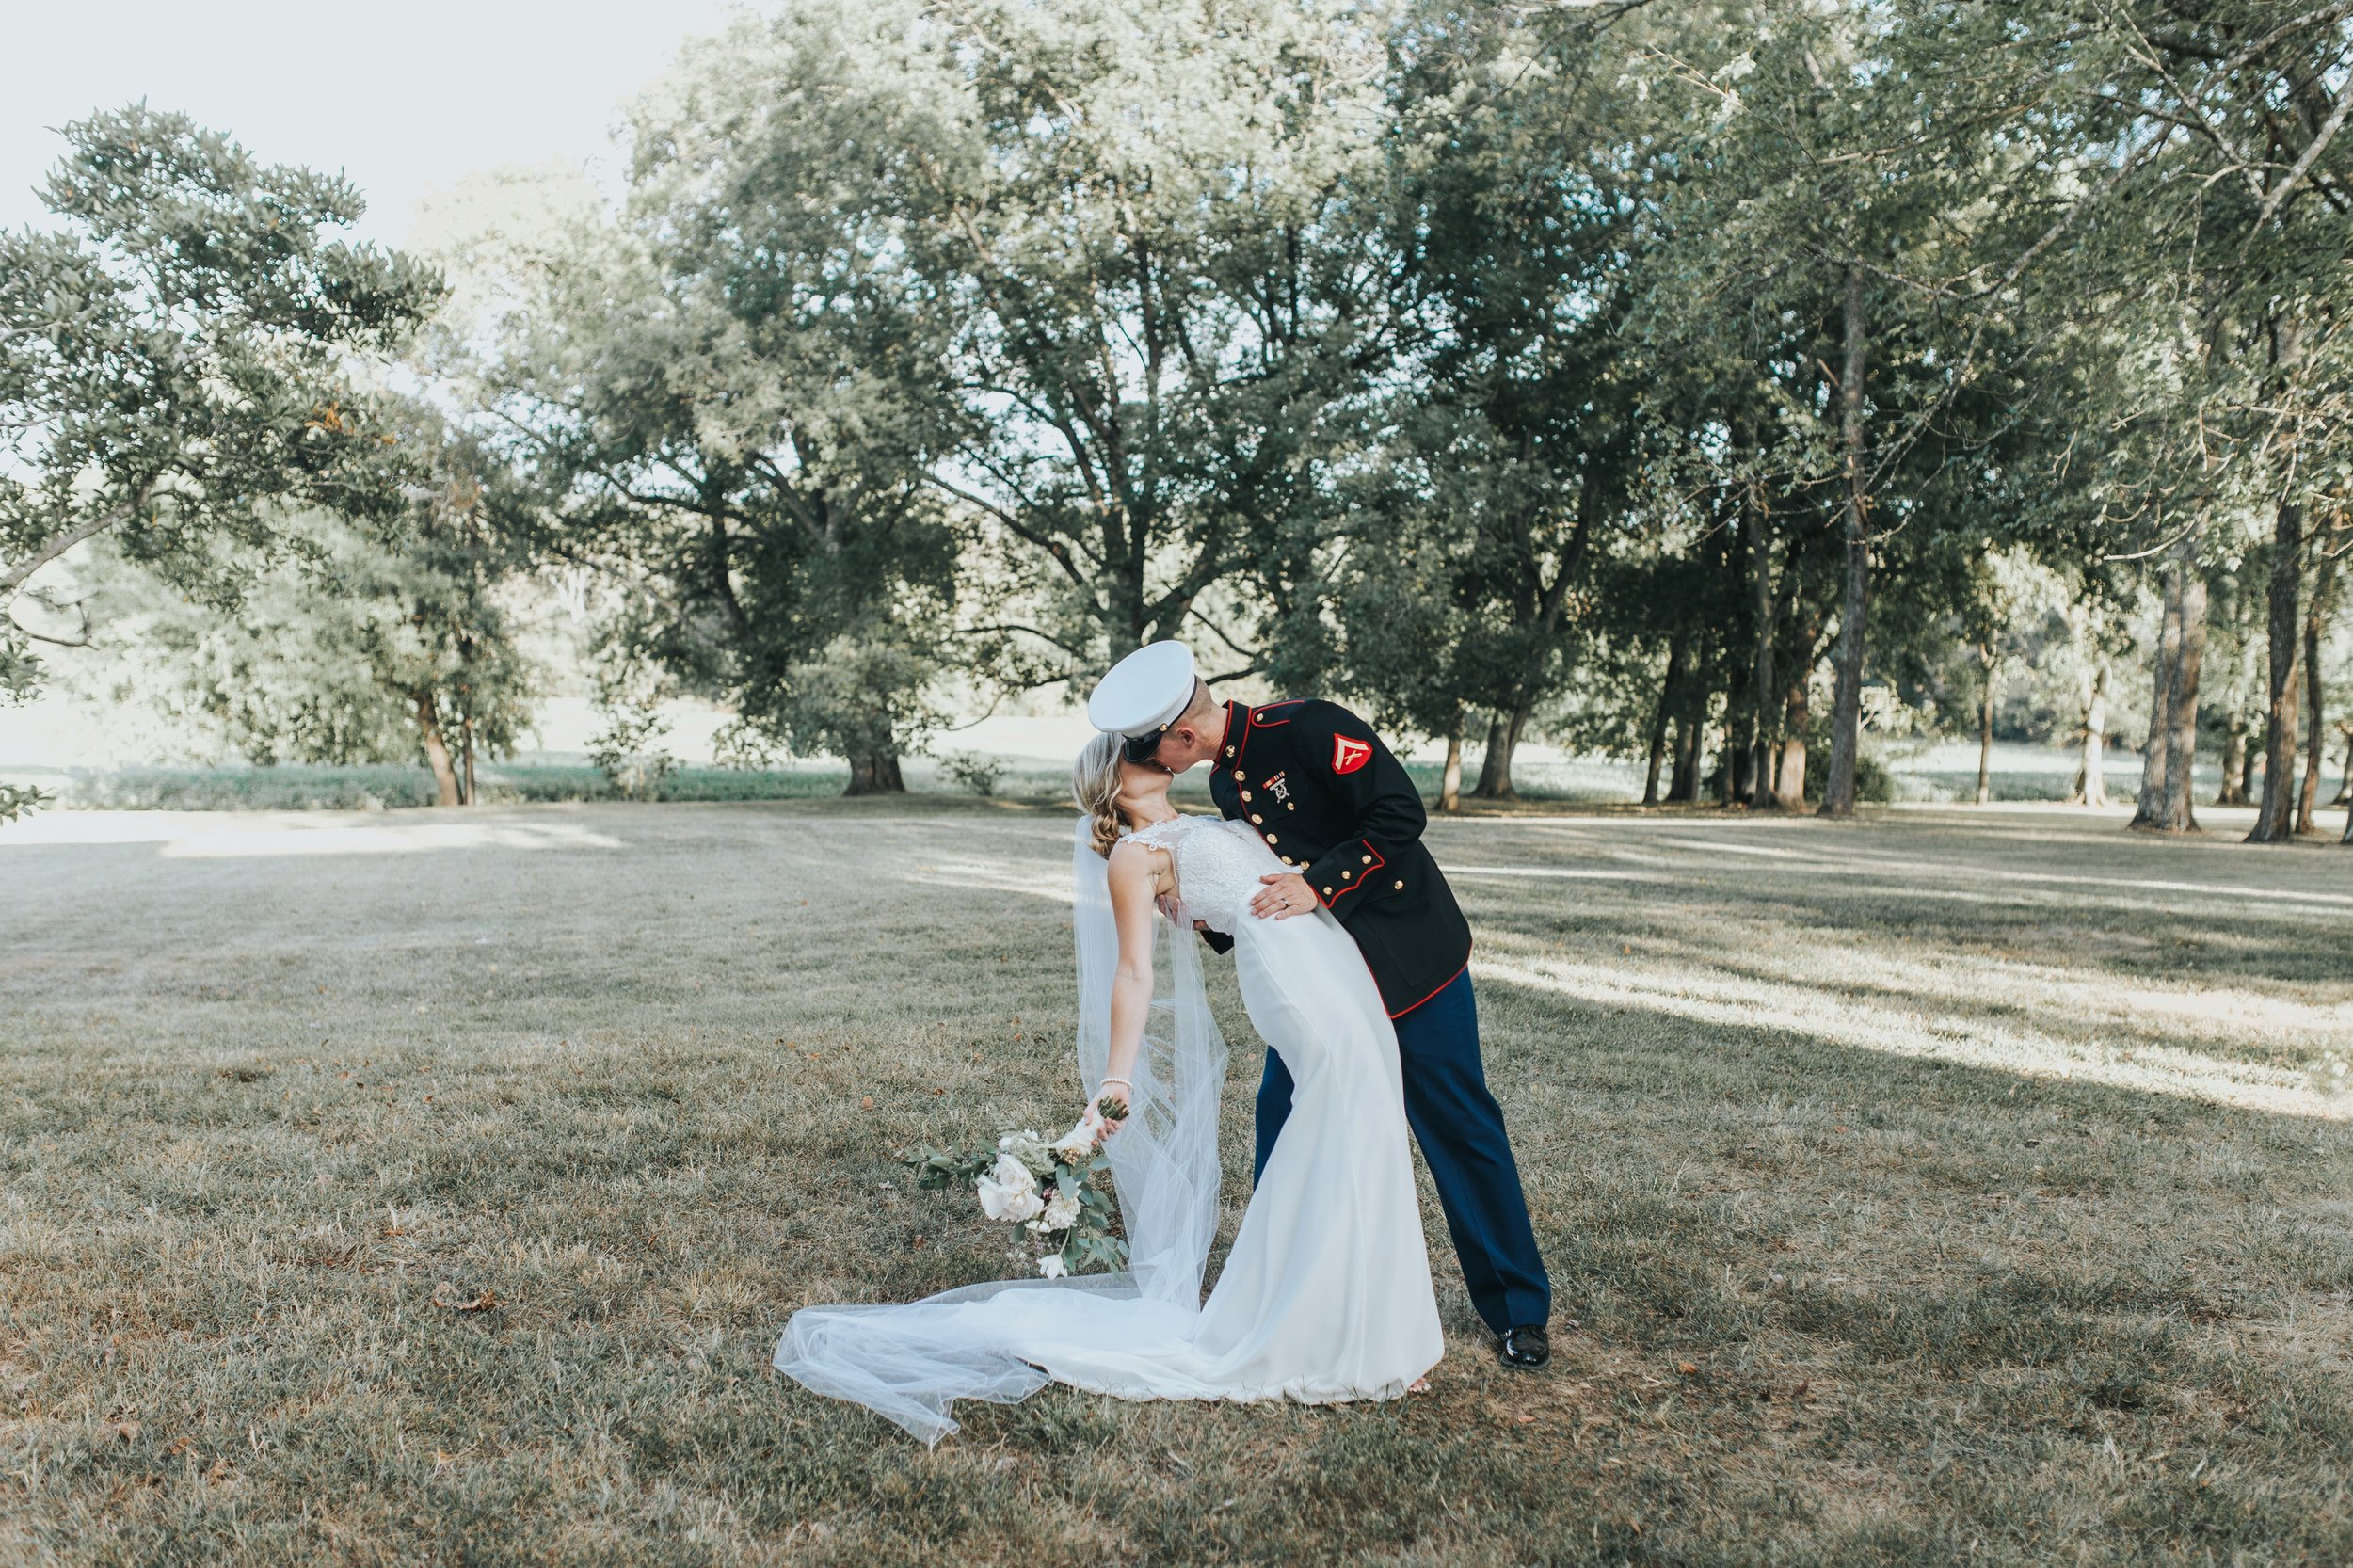 Virginia wedding photographer, Charlottesville wedding photographer, the hunt at Selma wedding, amelia virginia wedding photographer_0204.jpg